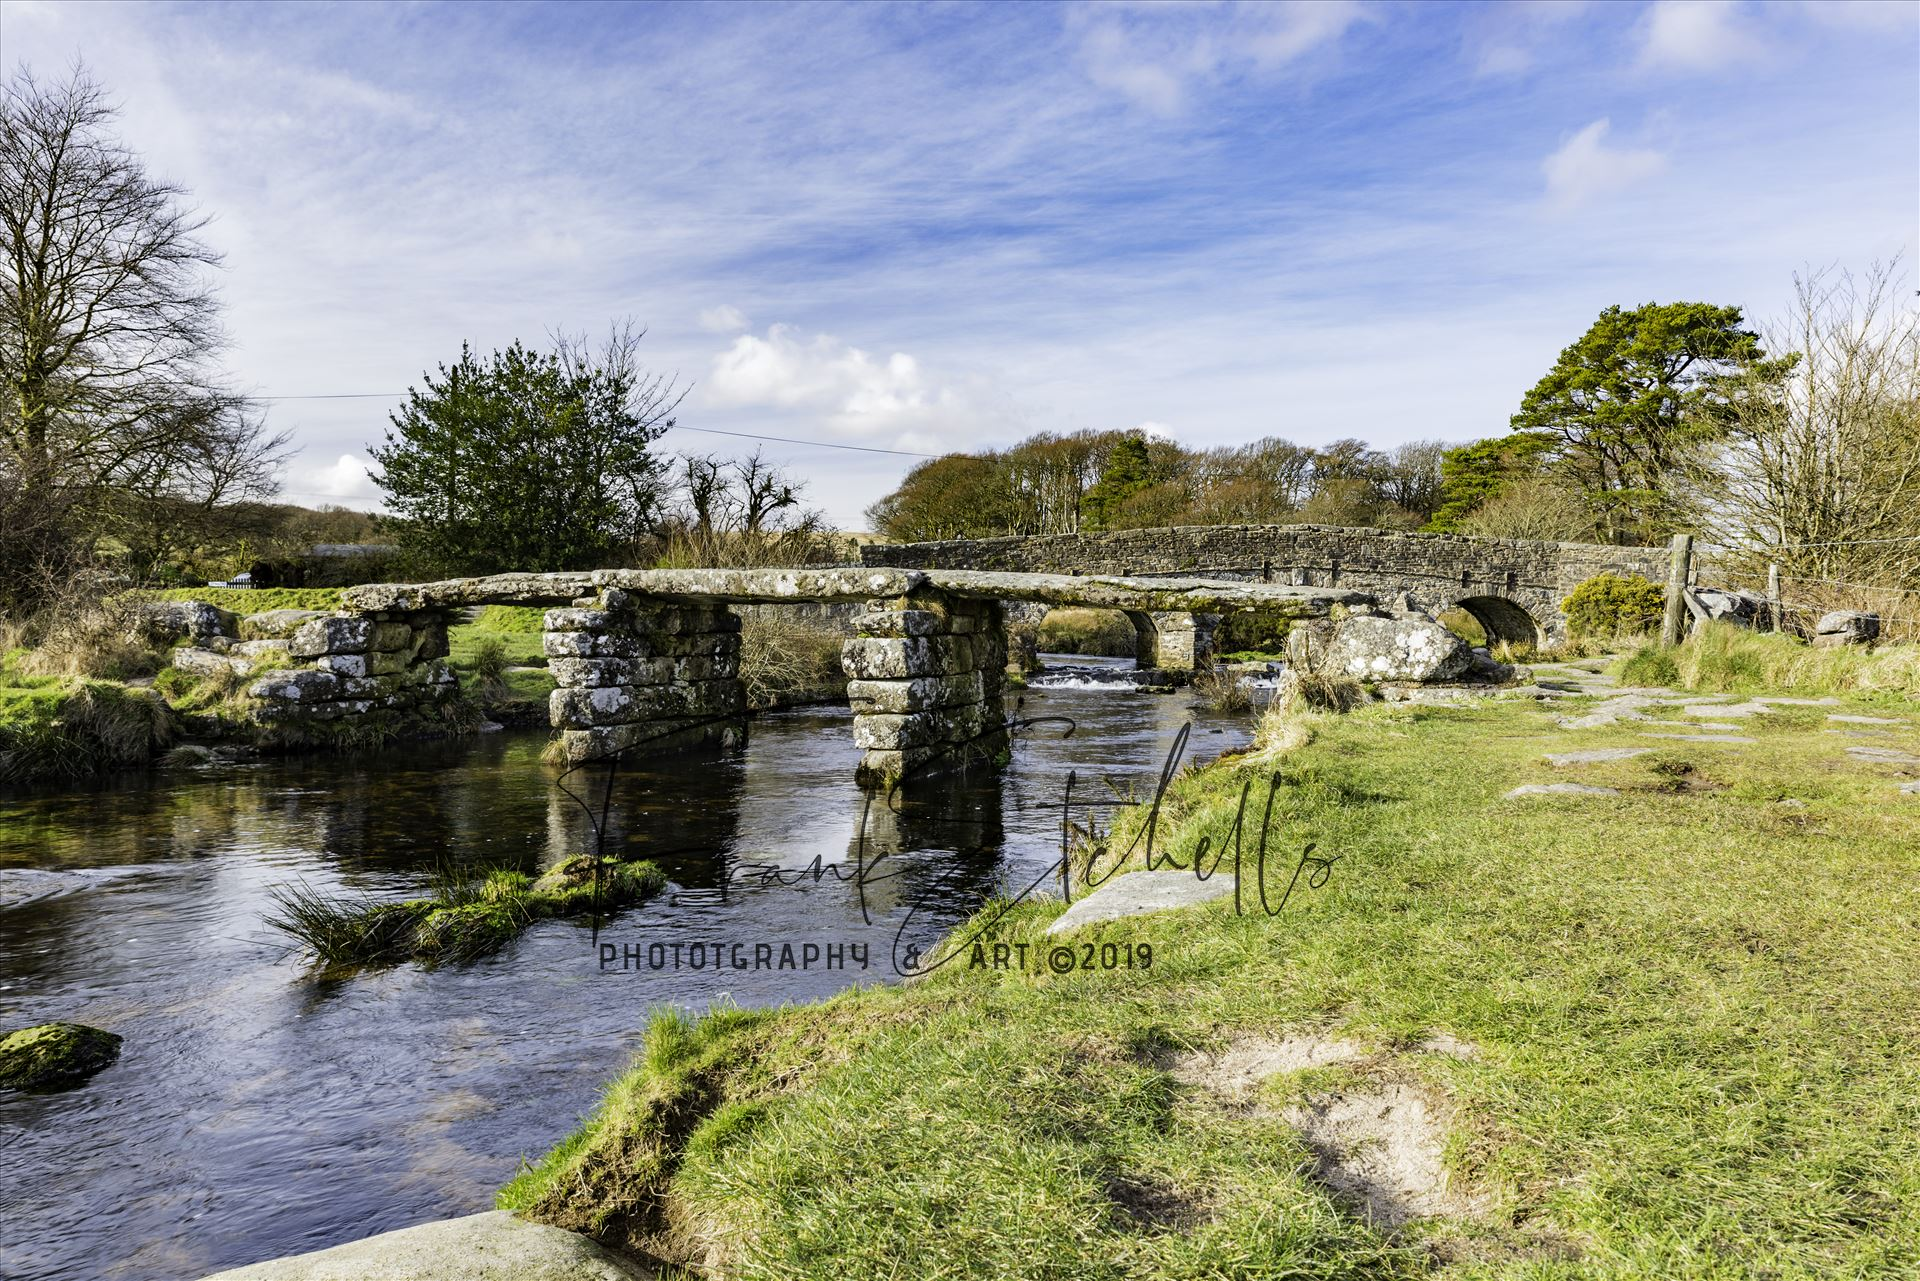 Postbridge Clapper Bridge 2 - A view of the 'Clapper Bridge' at Postbridge in the Dartmoor National Park on a cold February day visit. by Frank Etchells Photography